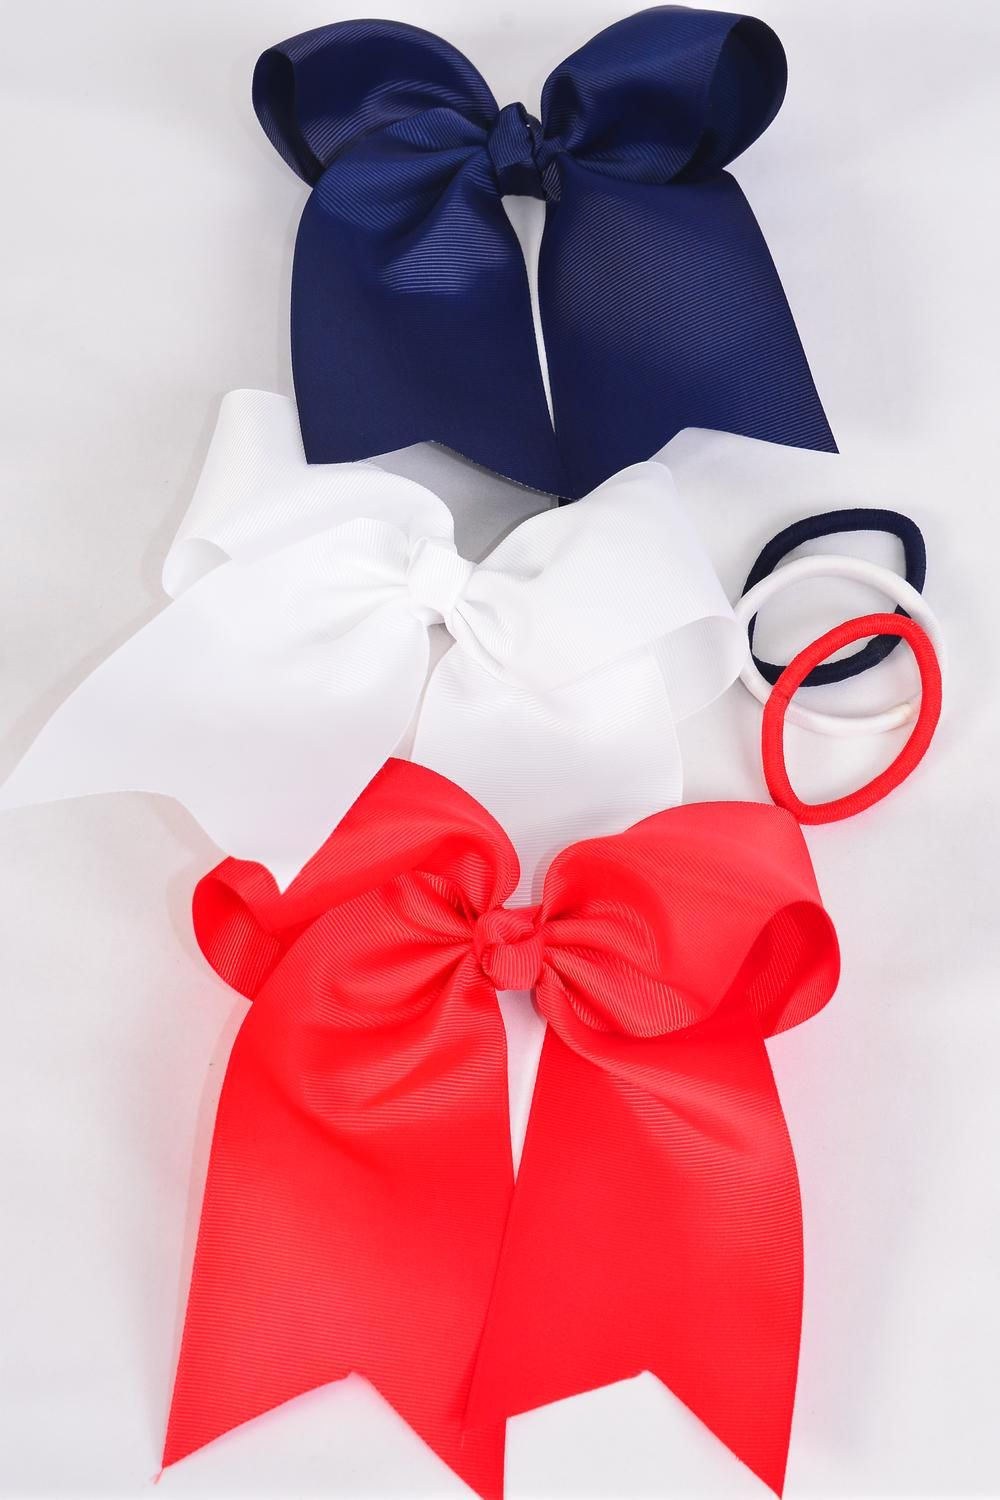 "Hair Bow Jumbo Long Tail Elastic Cheer Type Bow Grosgrain Bow-tie Red White Navy Mix/DZ **Red White Navy Mix** Elastic,Size-7""x 6"" Wide,4 of each Color Asst,Clip Strip & UPC Code"